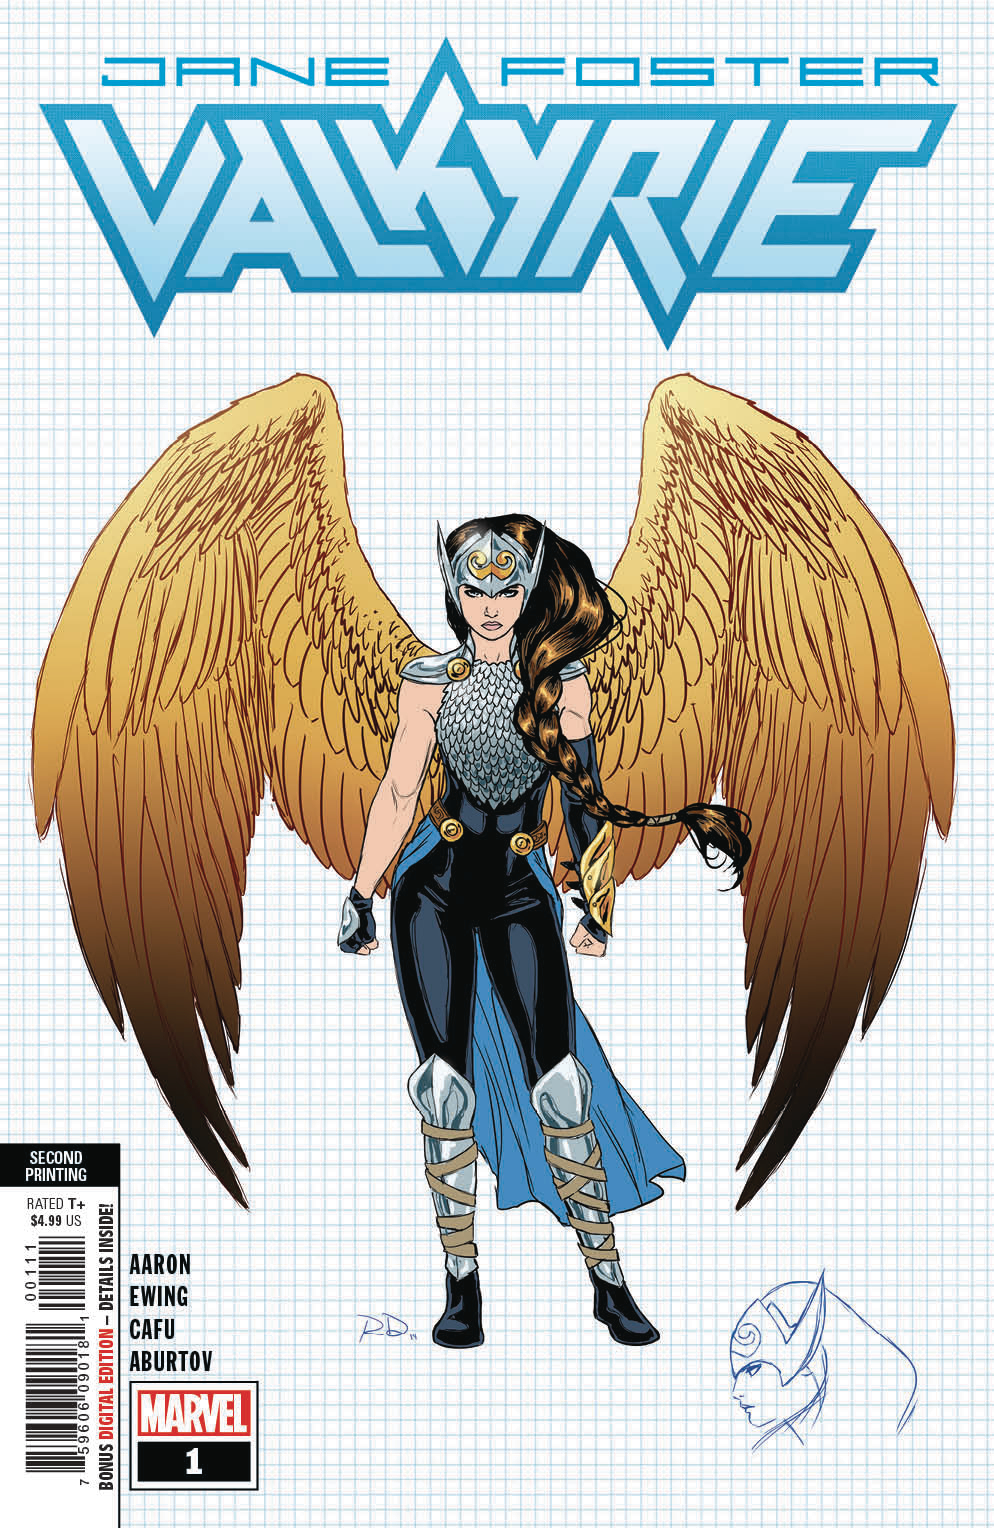 VALKYRIE JANE FOSTER #1 2ND PTG NEW ART DAUTERMAN VAR